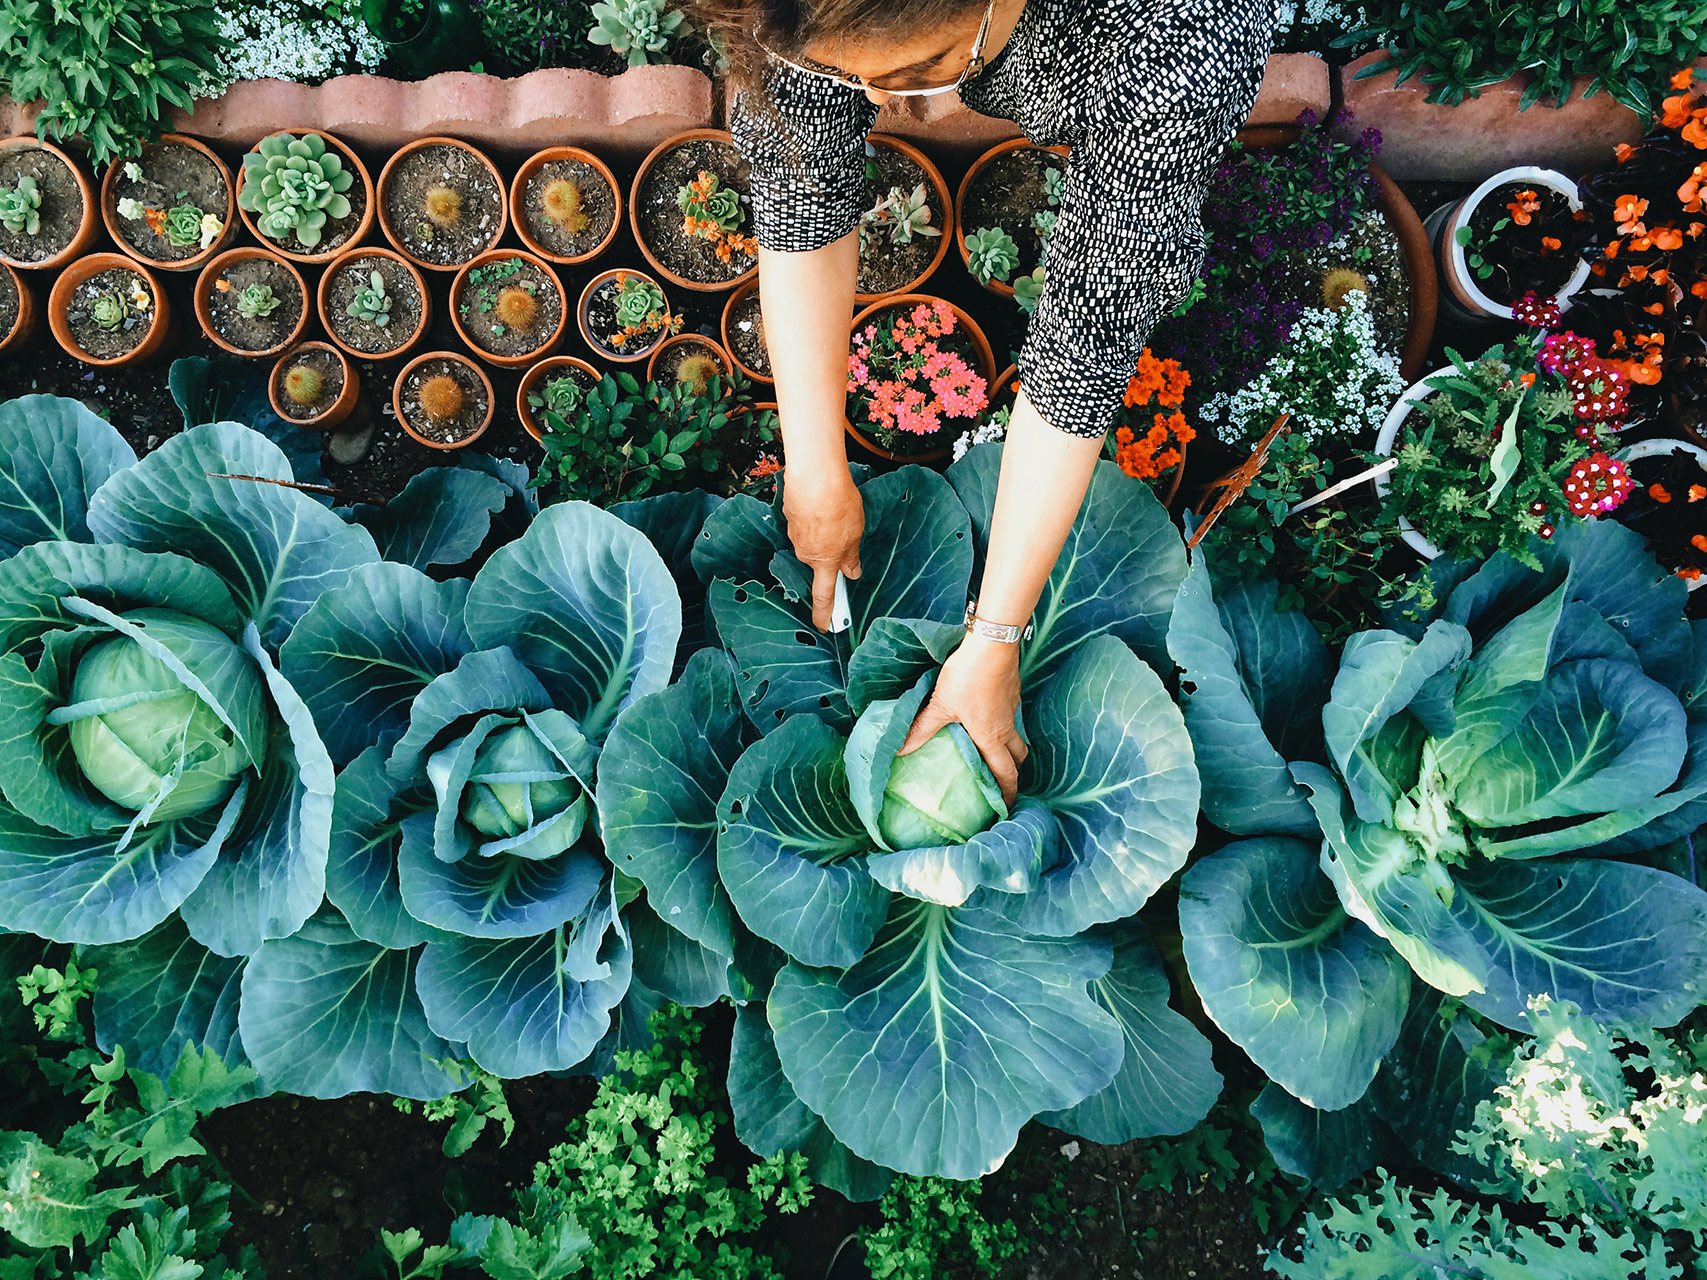 Why You Should Consider Transforming Part of Your Home Garden Into a Backyard Food Forest